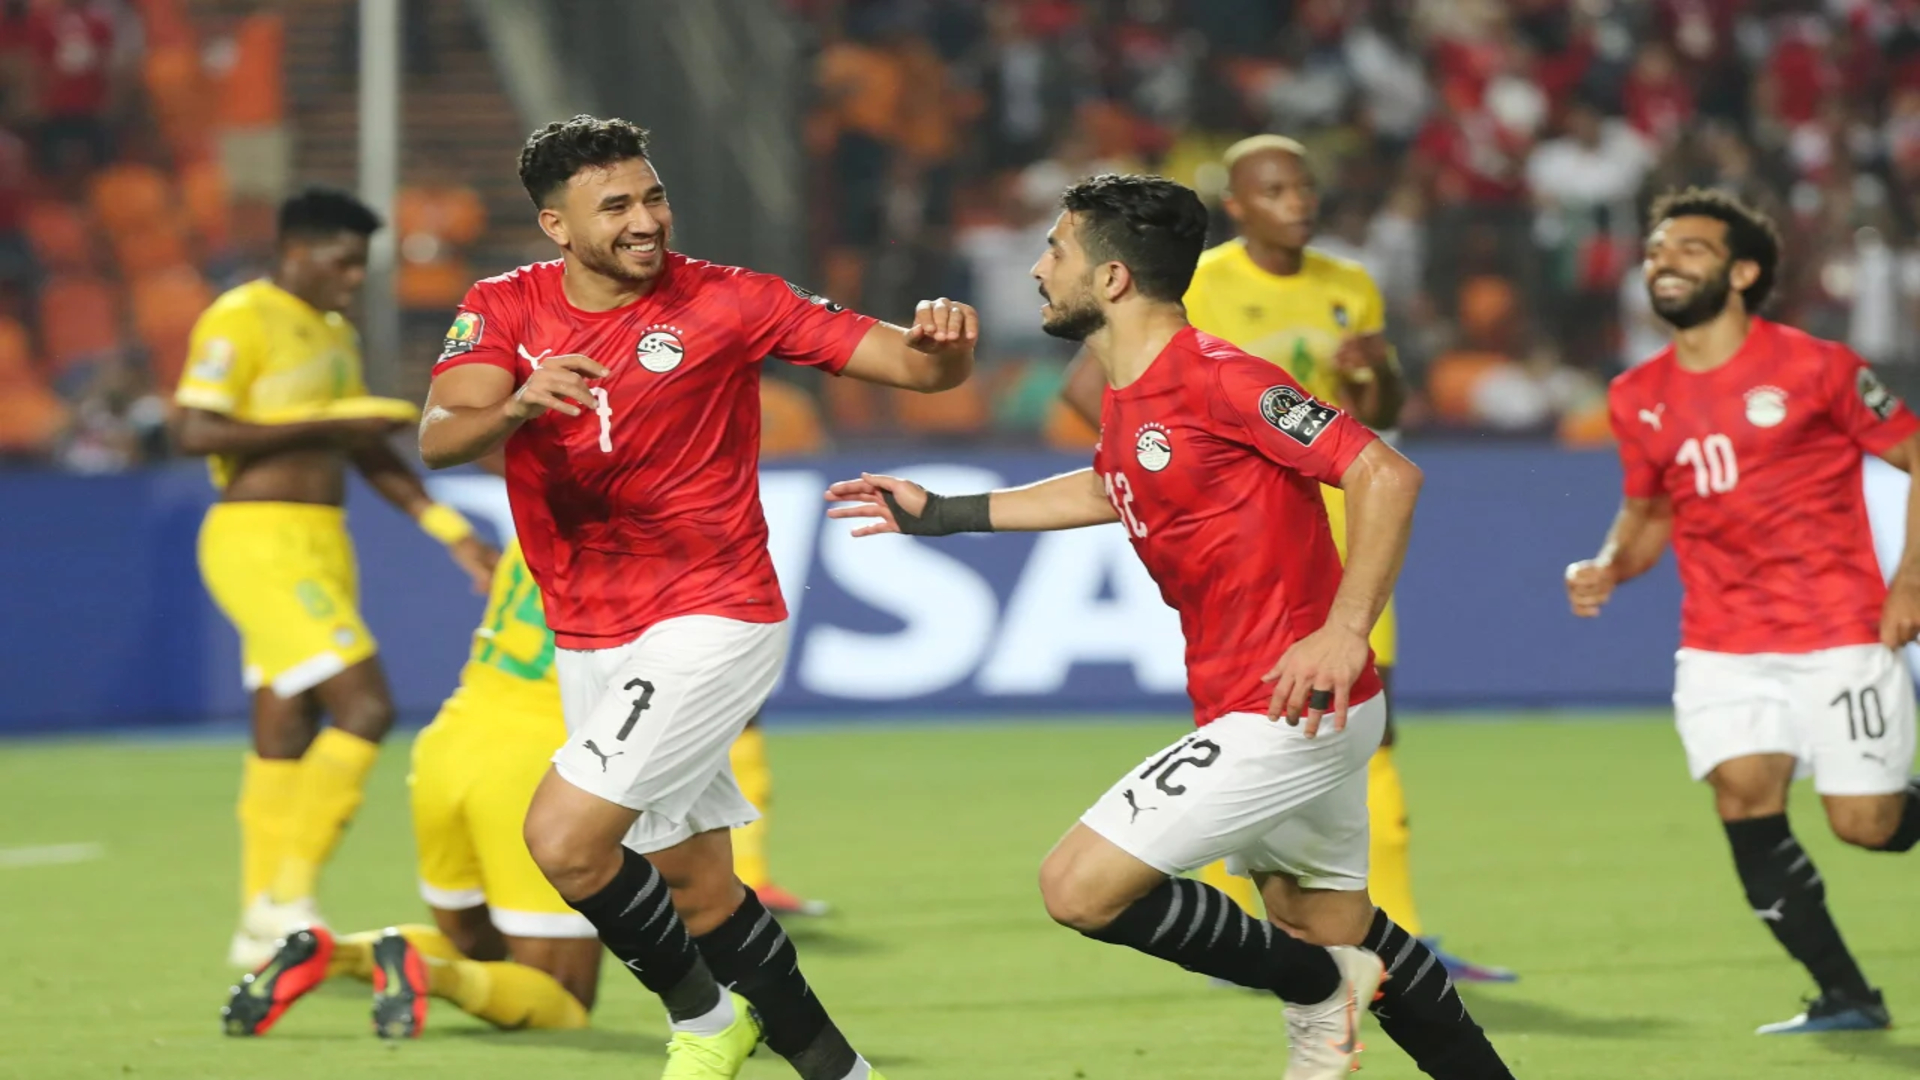 AFCON 2019: Egypt's Kouka Ruled Out of Round of 16